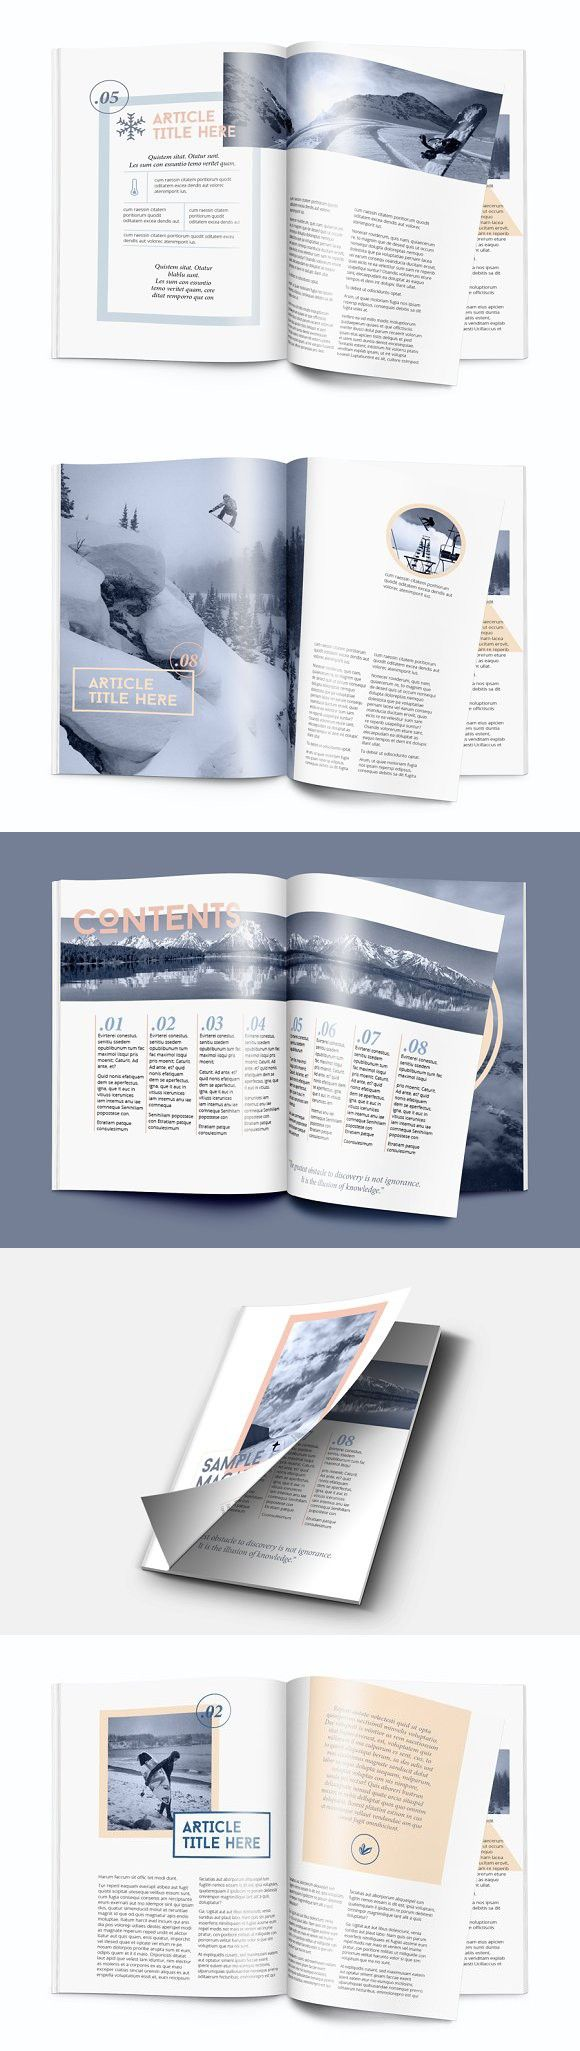 Magazine template - A4 - Indesign | Diseño editorial, Editorial y ...